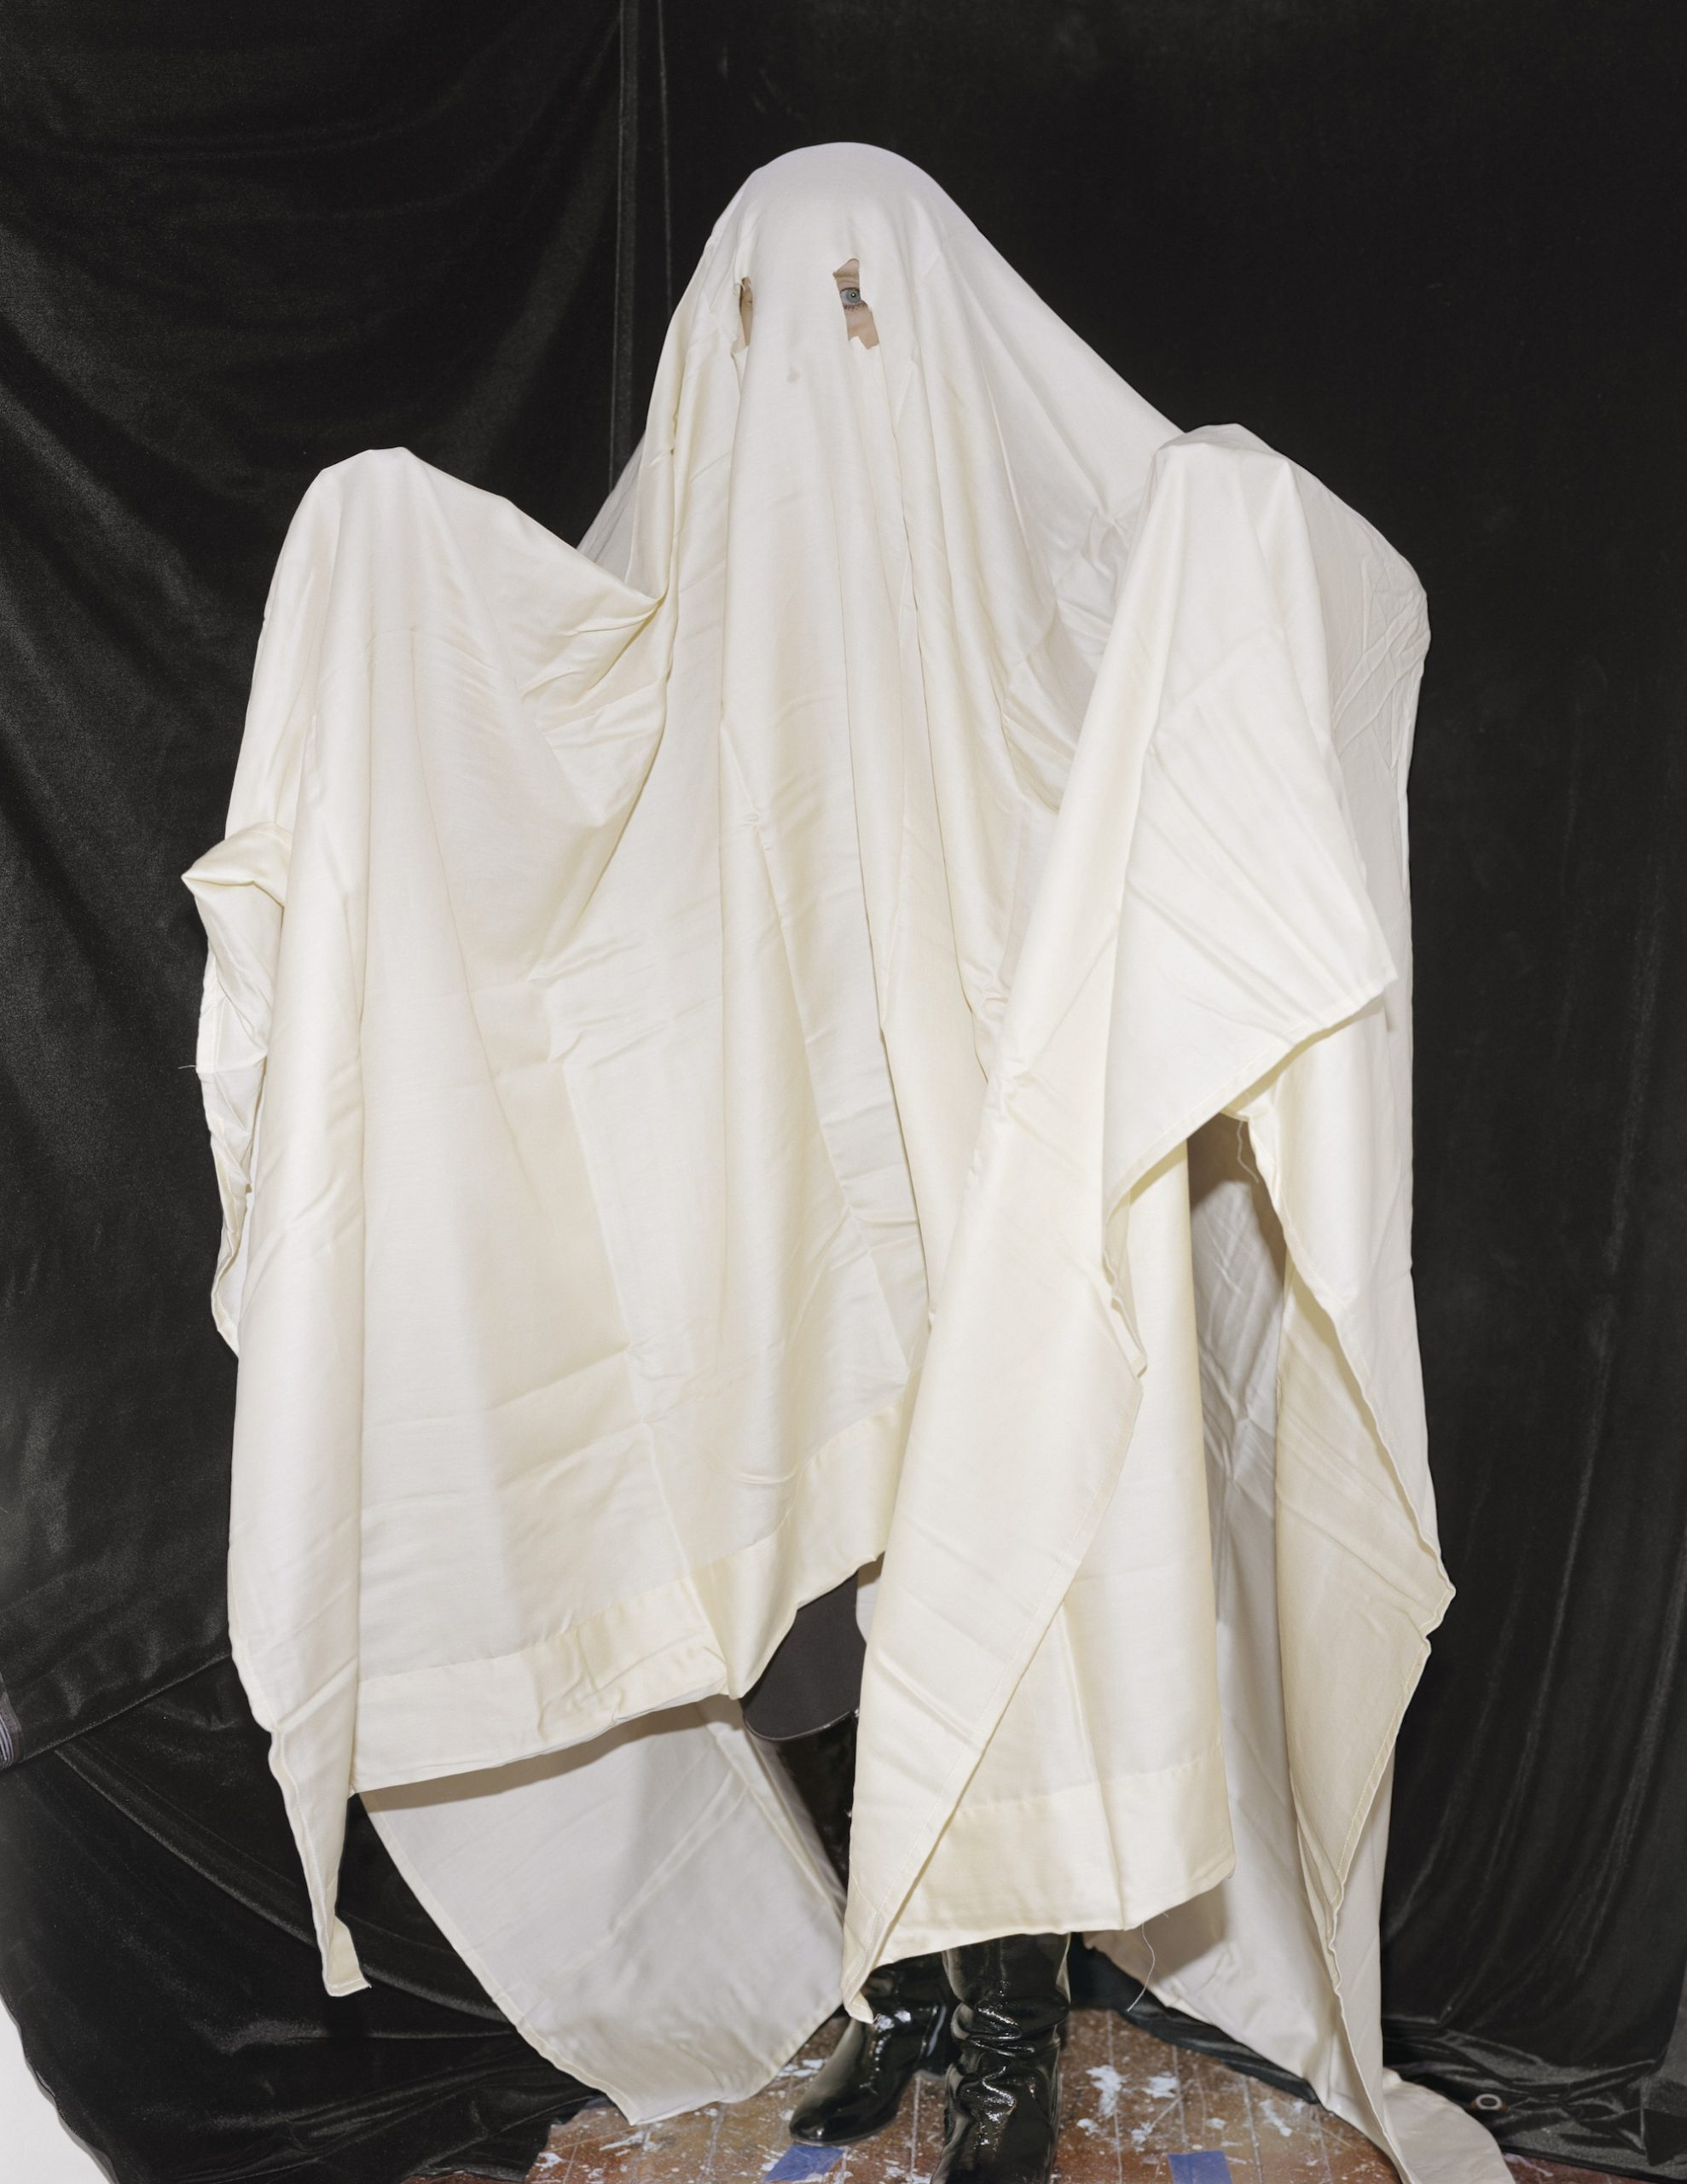 Whitney Hubbs, Untitled (Ghost), 2021. Courtesy the artist